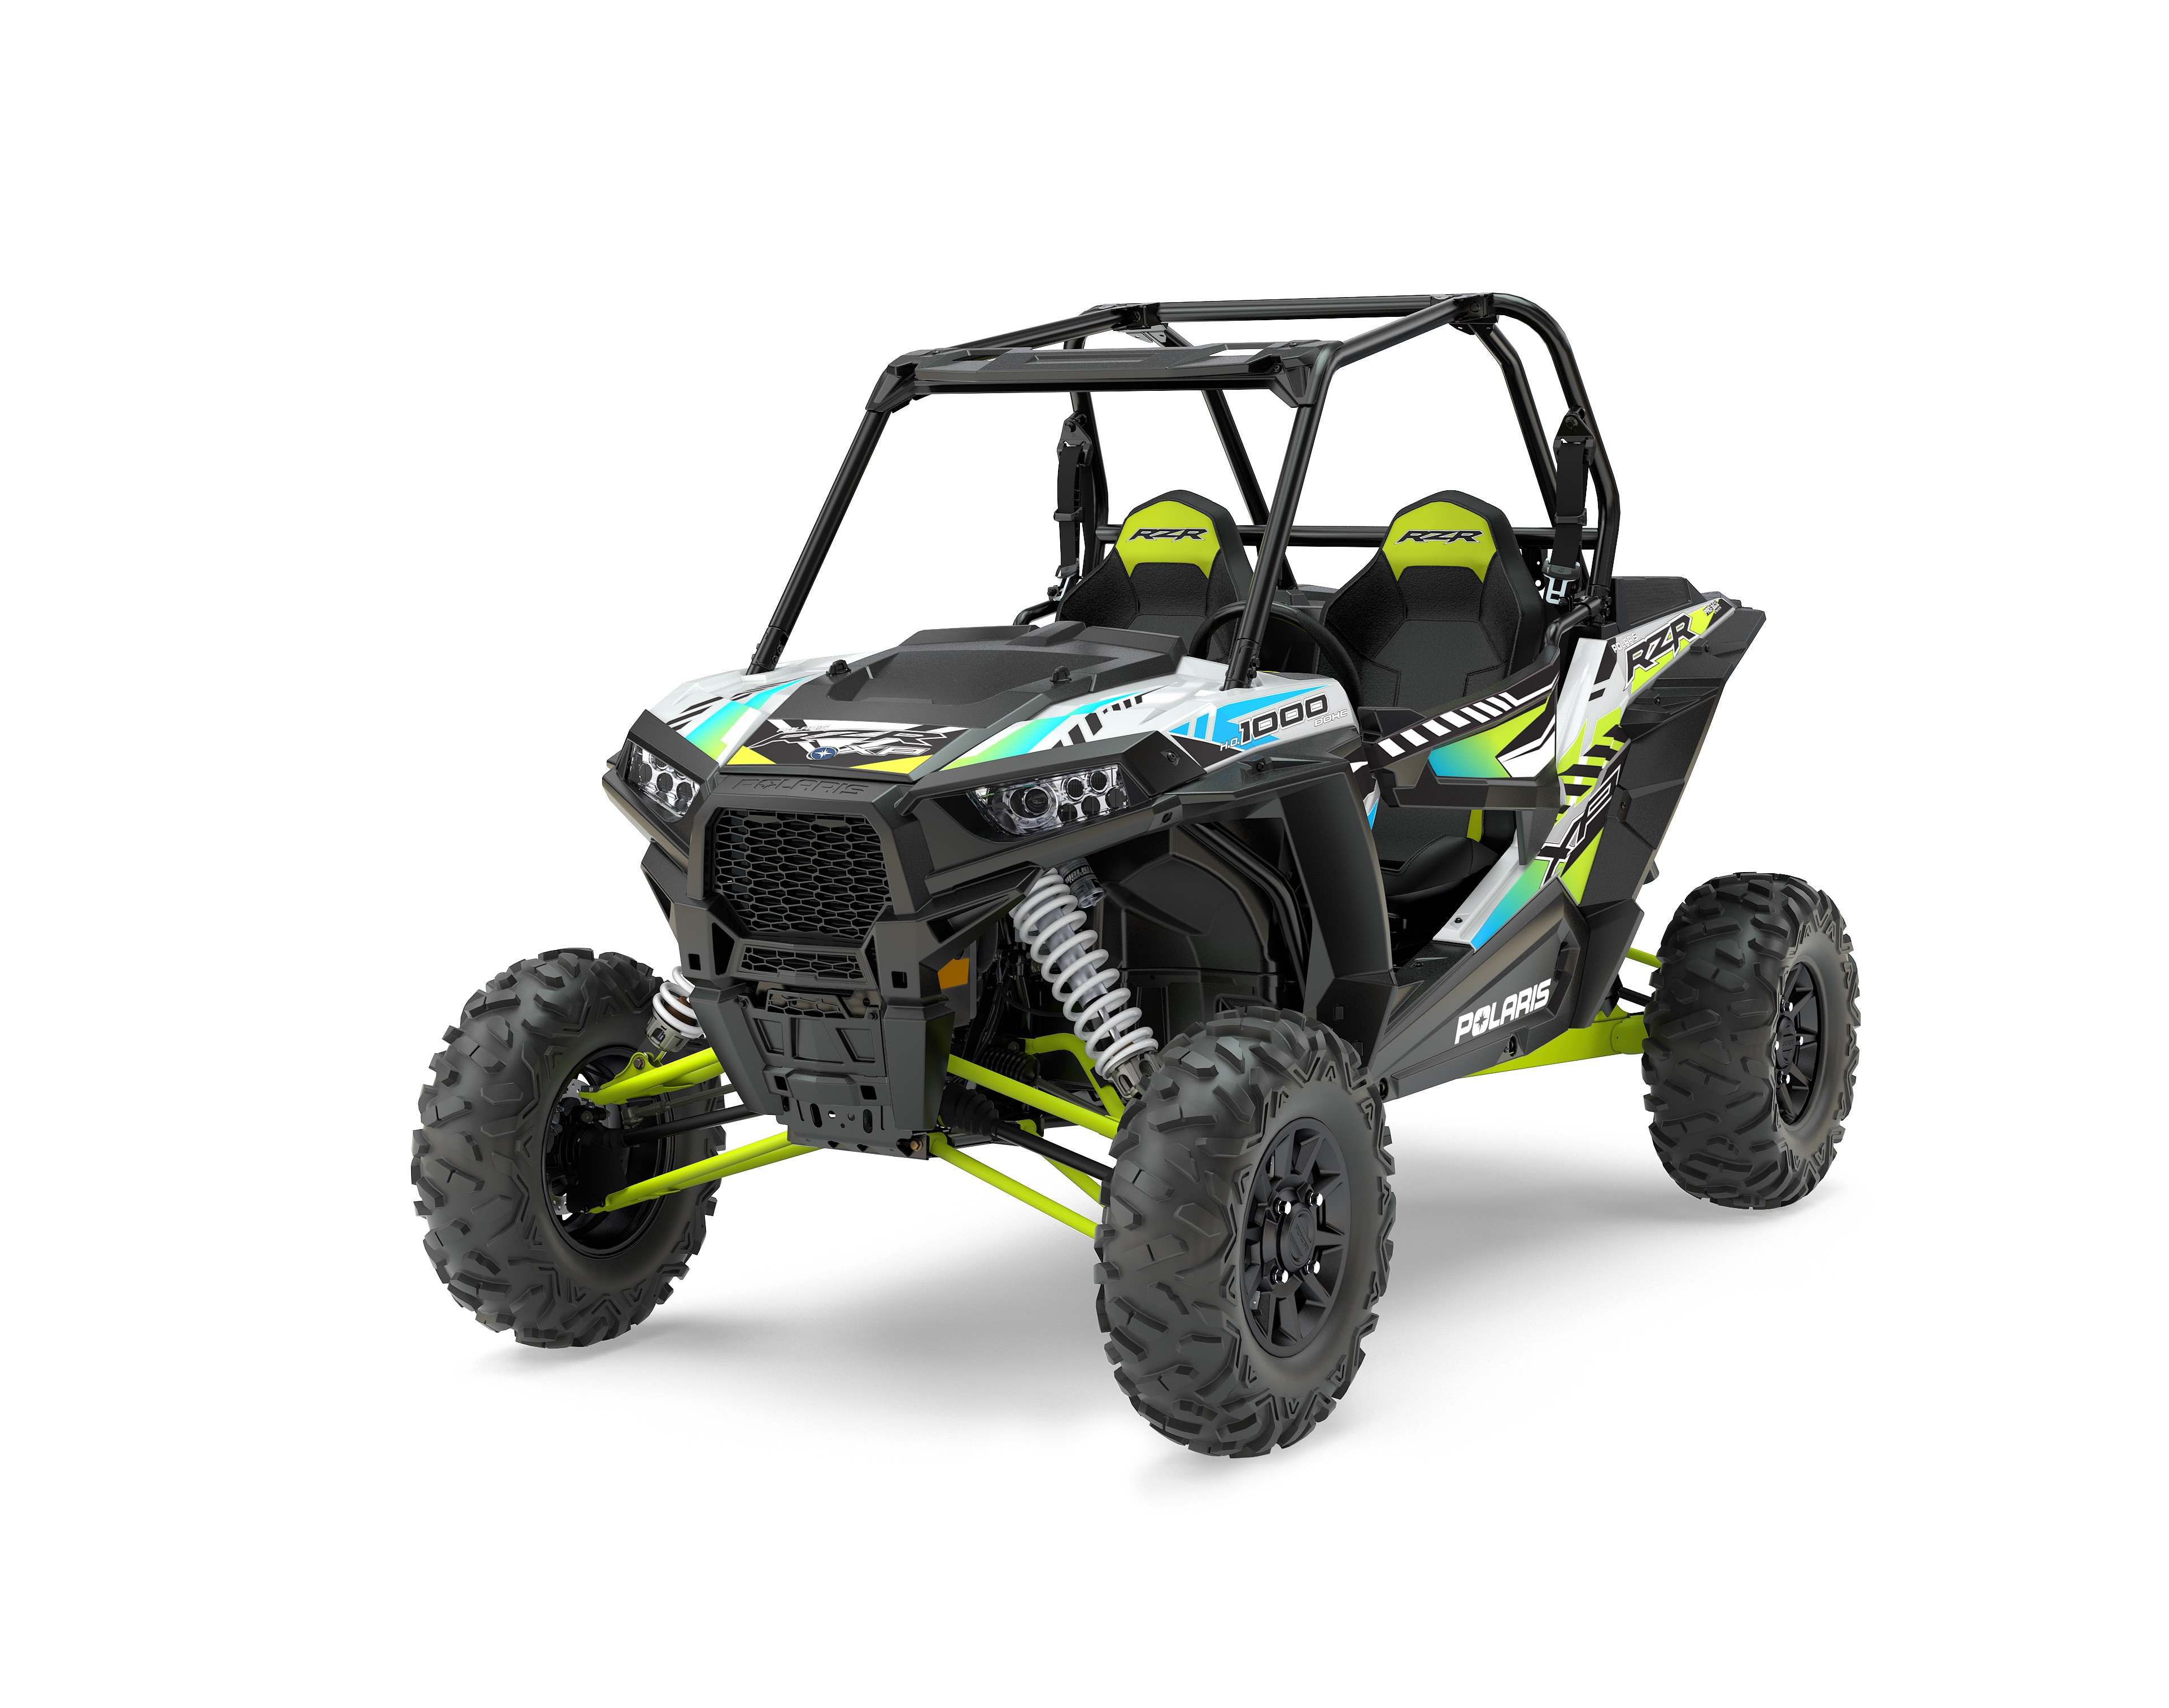 2017 Polaris Models Released New Long Travel Ace 4 Seat General And More